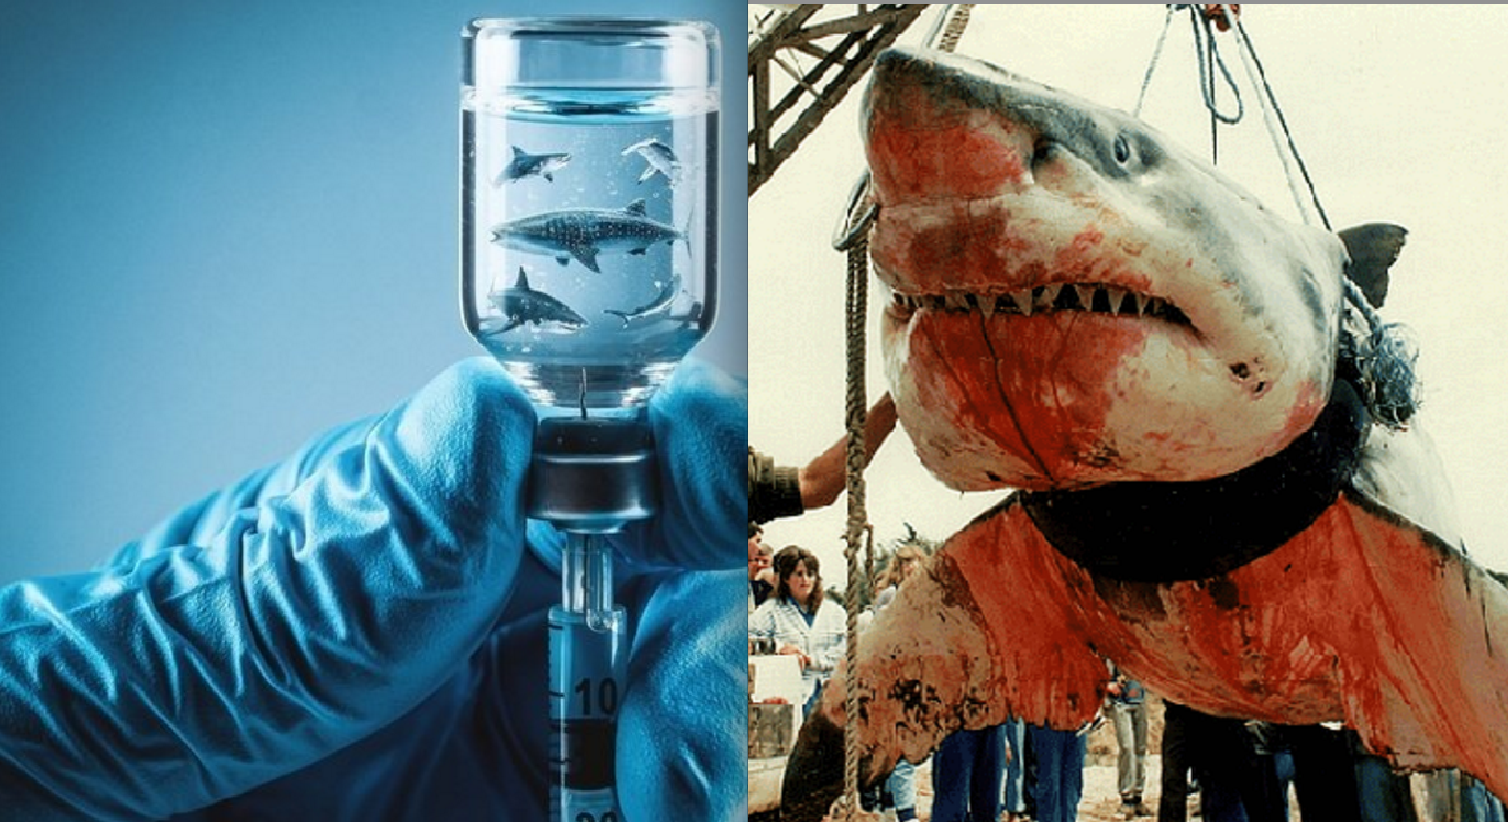 Petition Watch: Petition Aims to Stop 500,000 Sharks from Being Killed for COVID-19 Vaccines